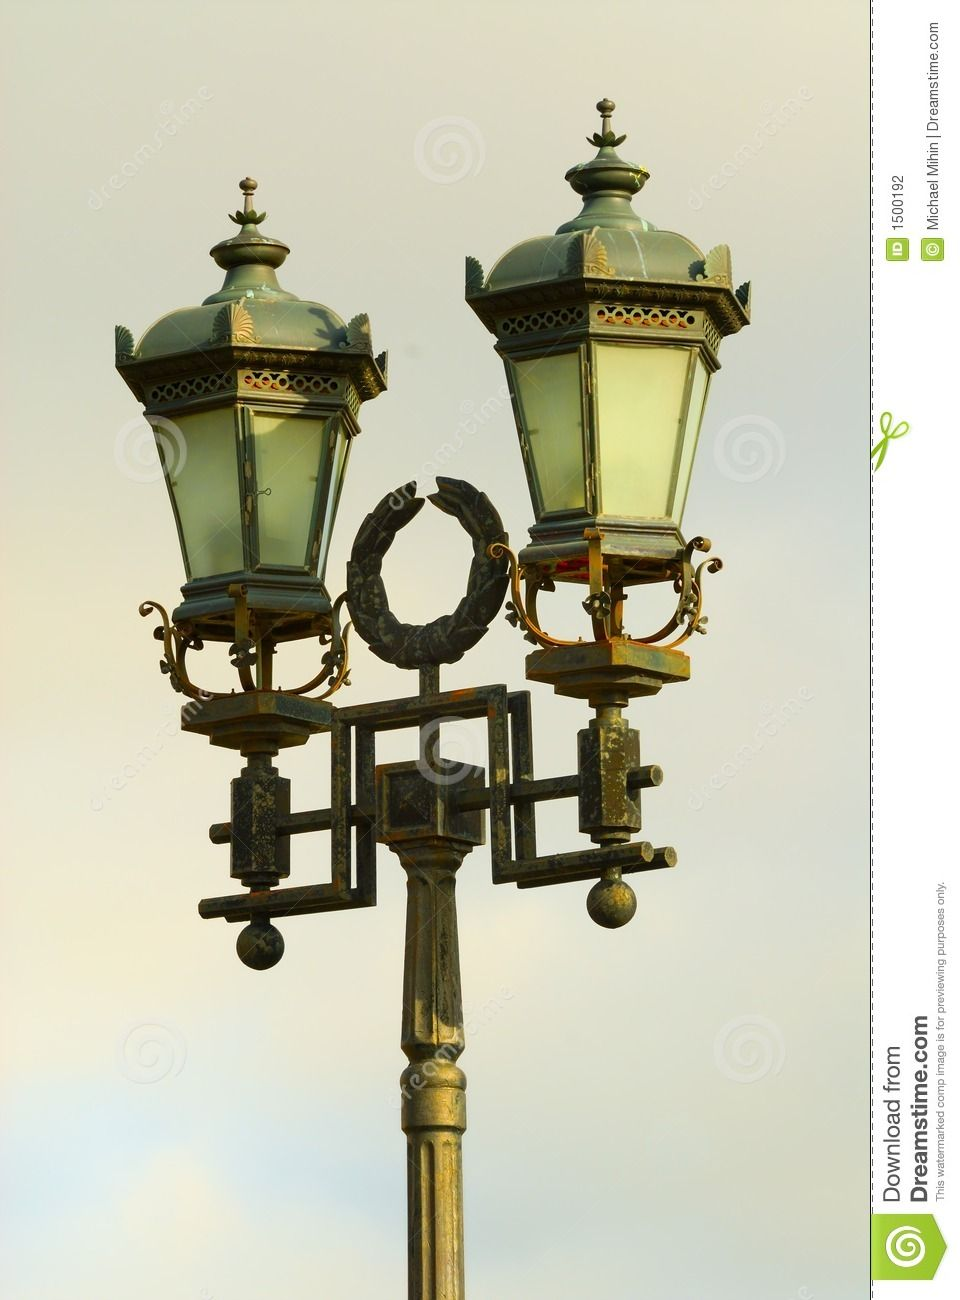 Pin On Gorgeous Street Lamps